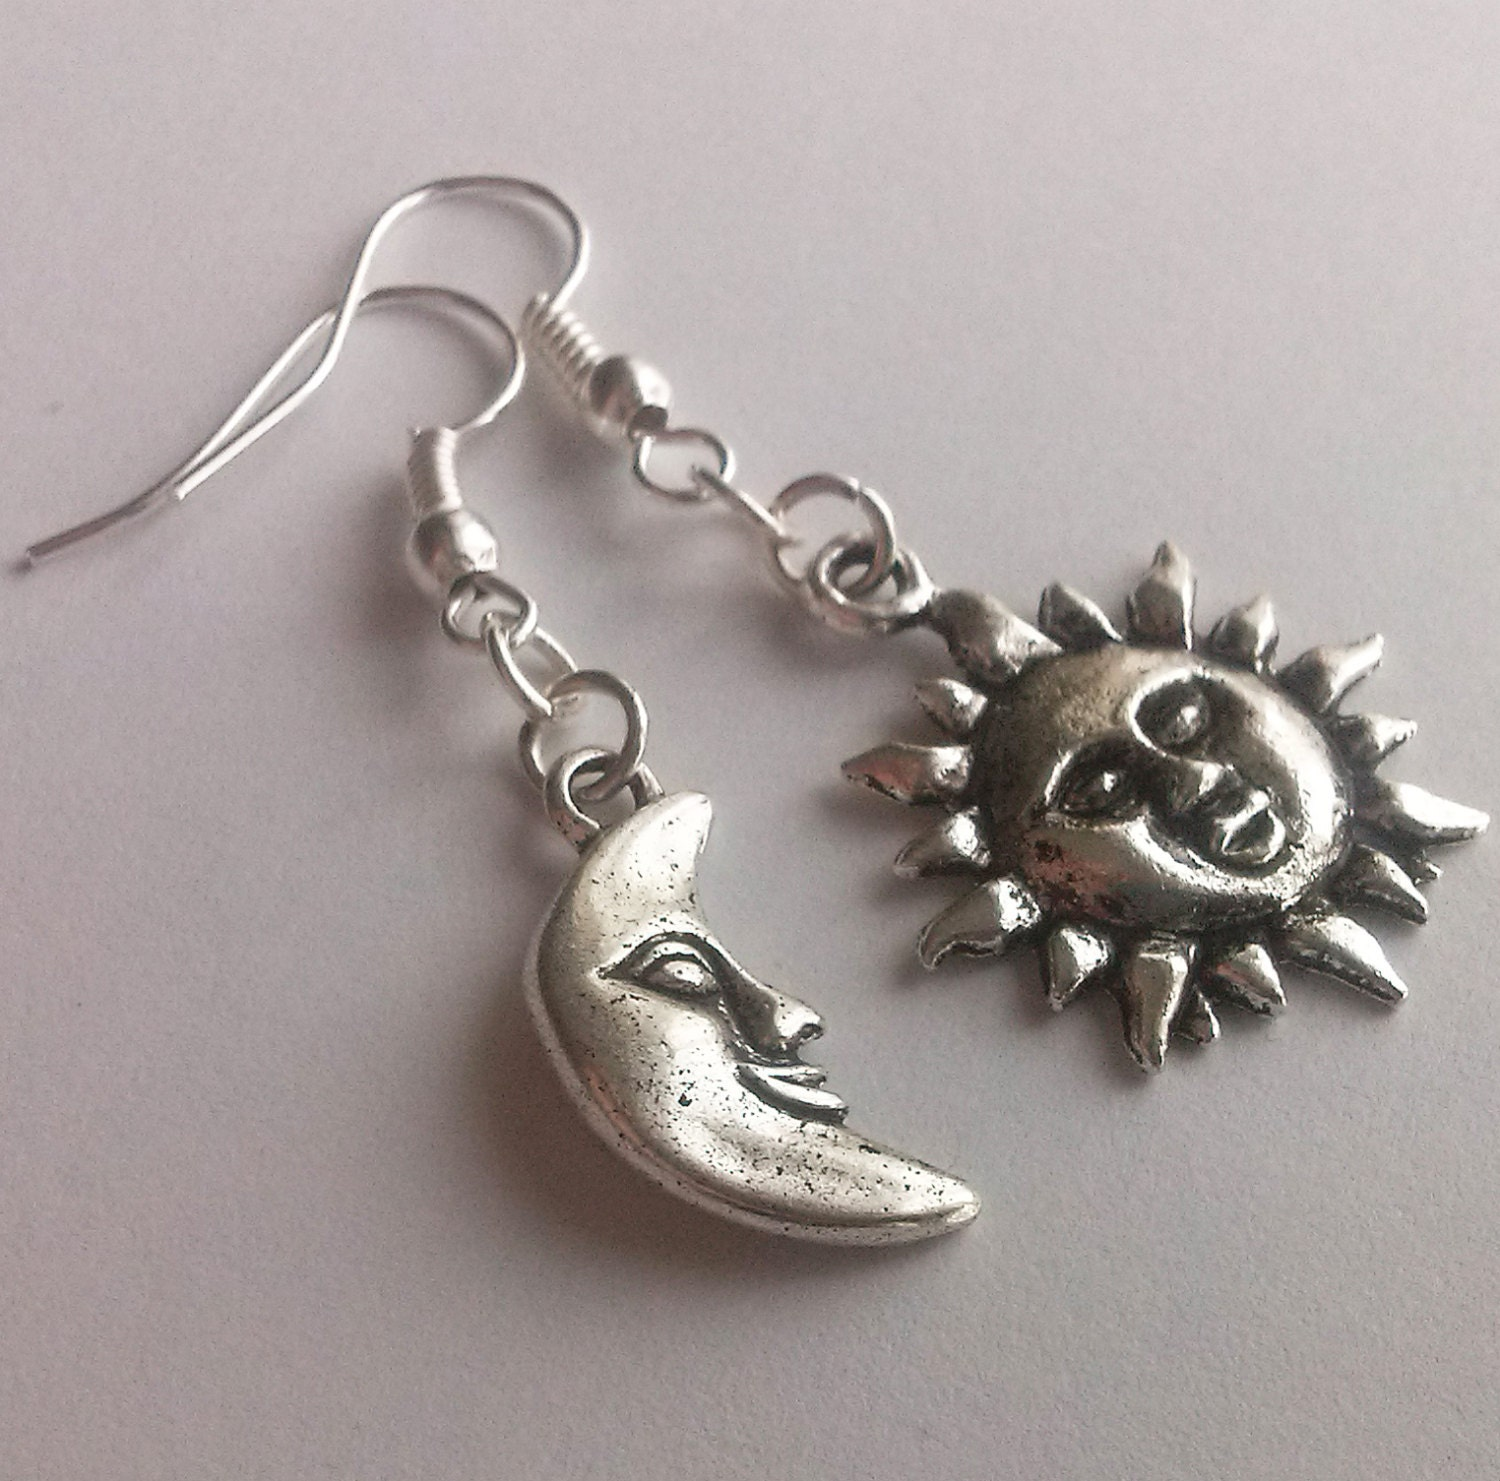 asymmetrical mismatched earrings silver sun and moon smiling